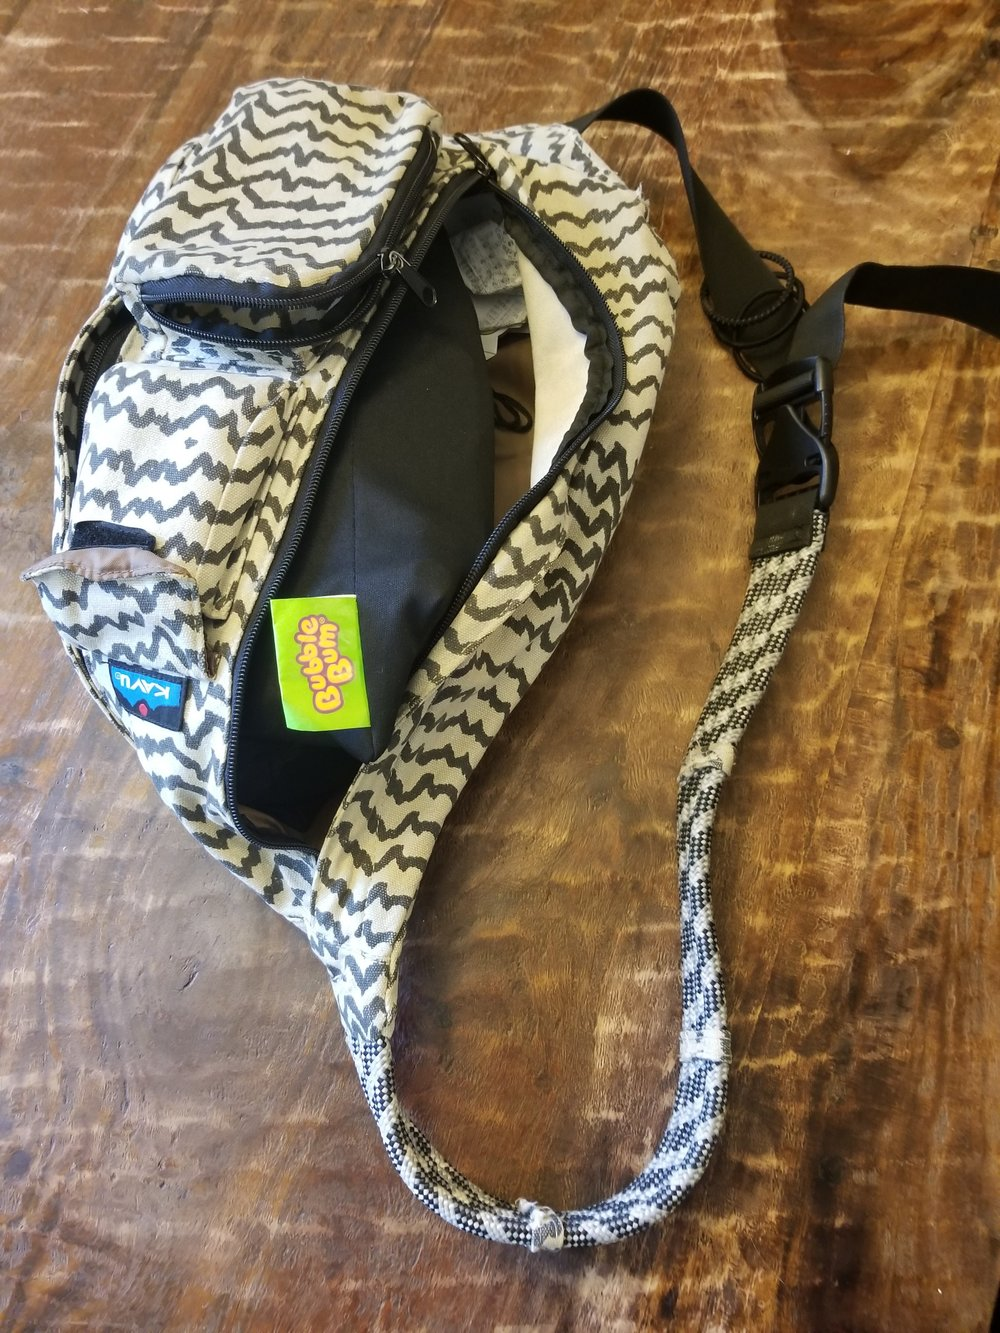 bubblebum in kavu.jpg